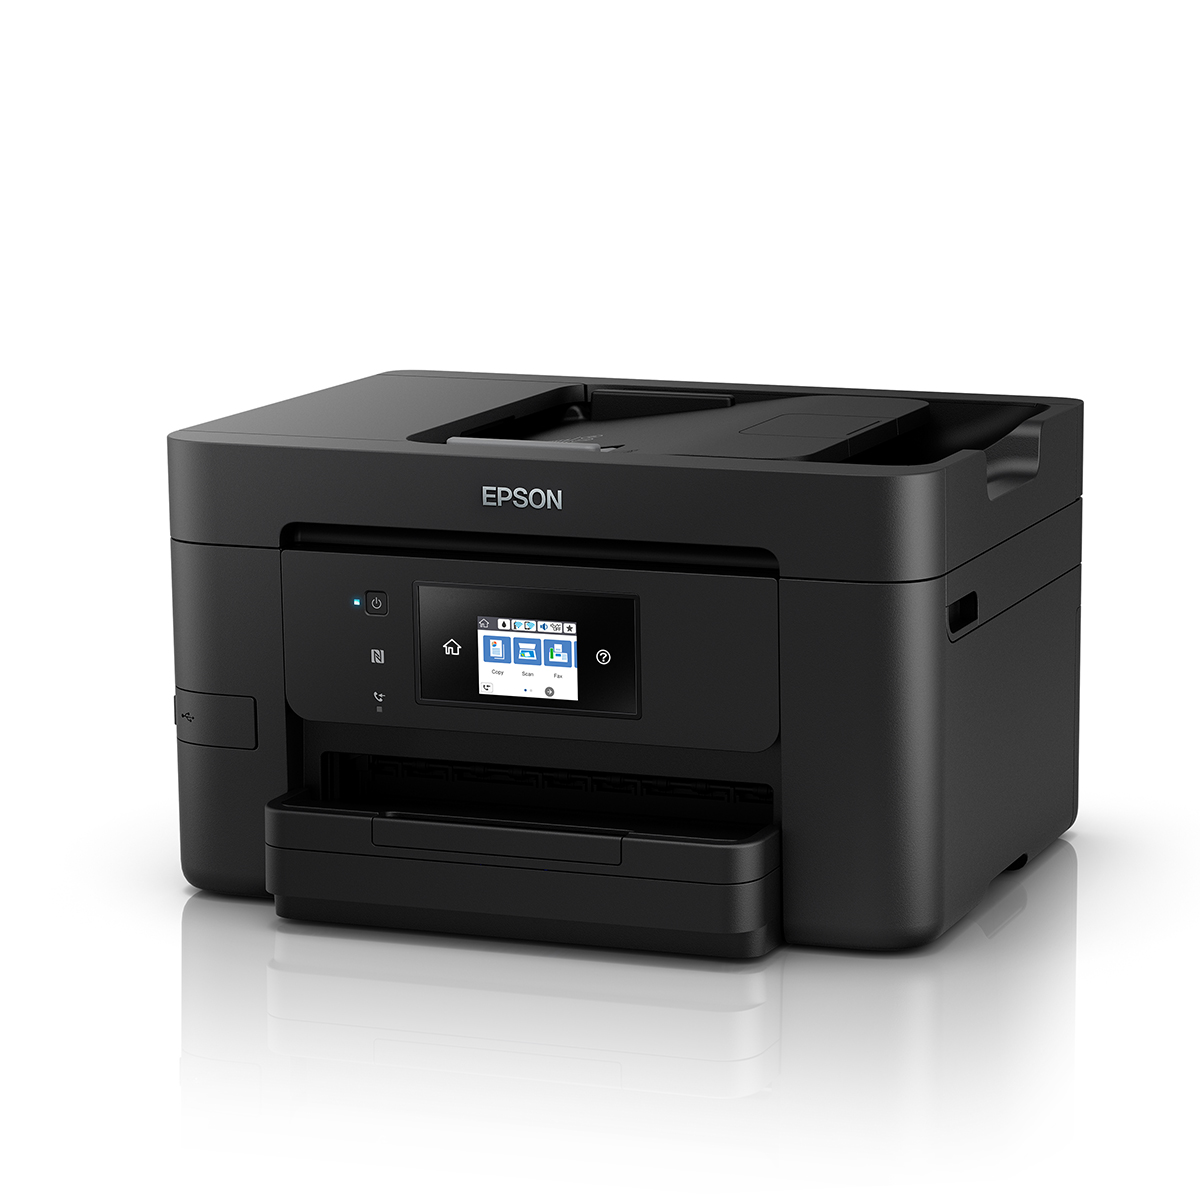 Epson WorkForce WF-3720DWF Colour Inket All-In-One Multifunction